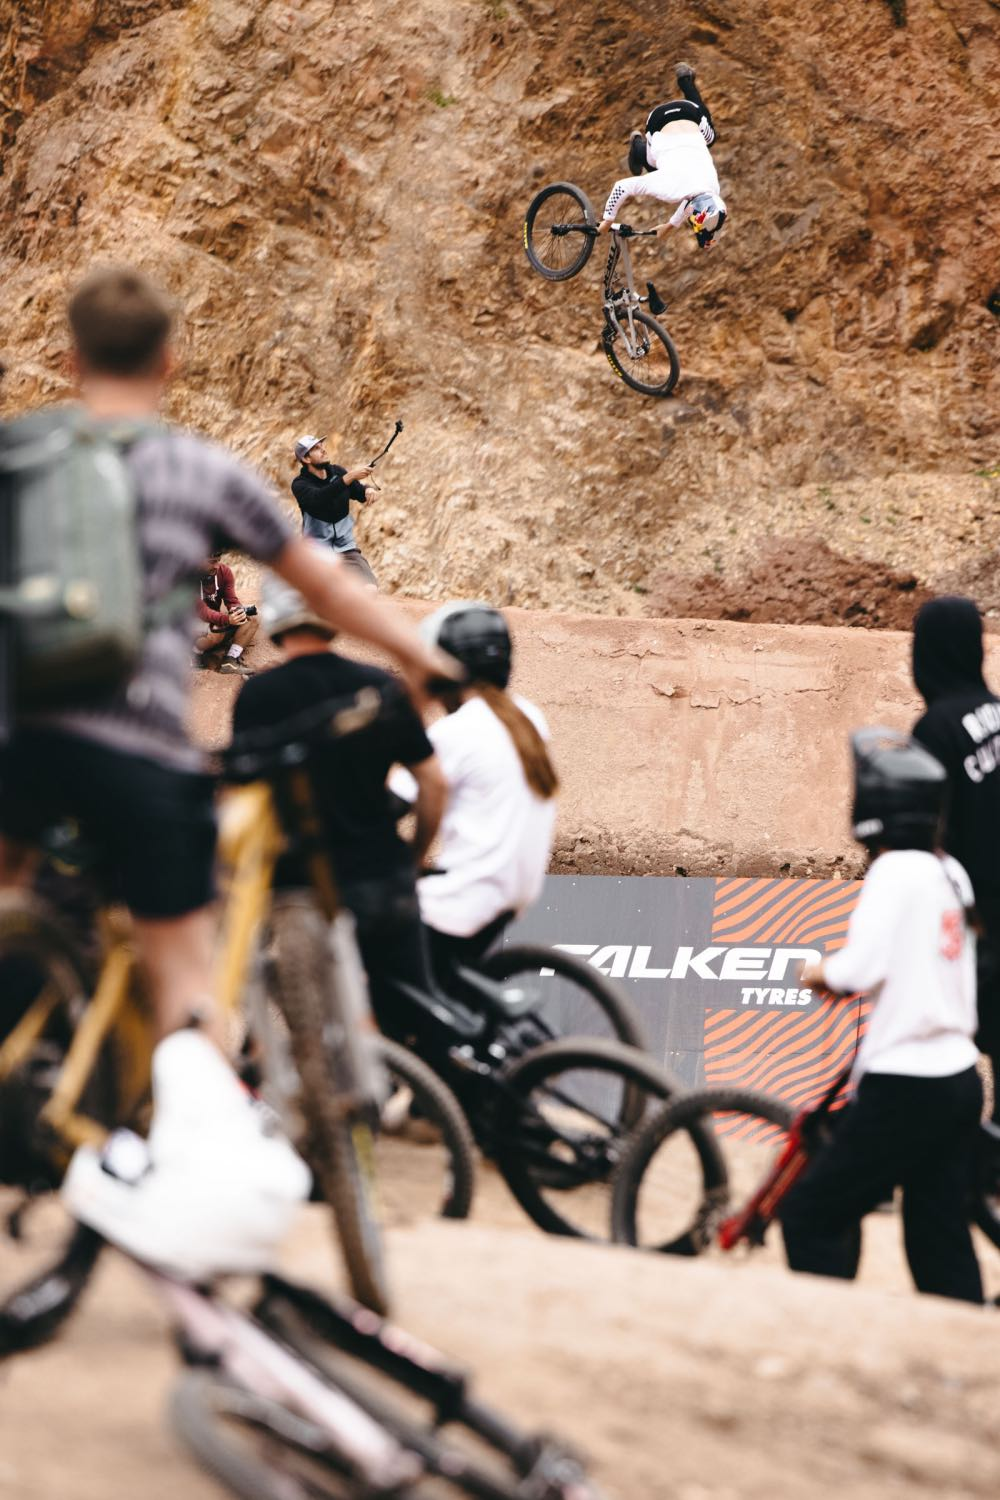 Emil Johansson riding at the 2021 Audi Nines Freeride and Slopestyle MTB event